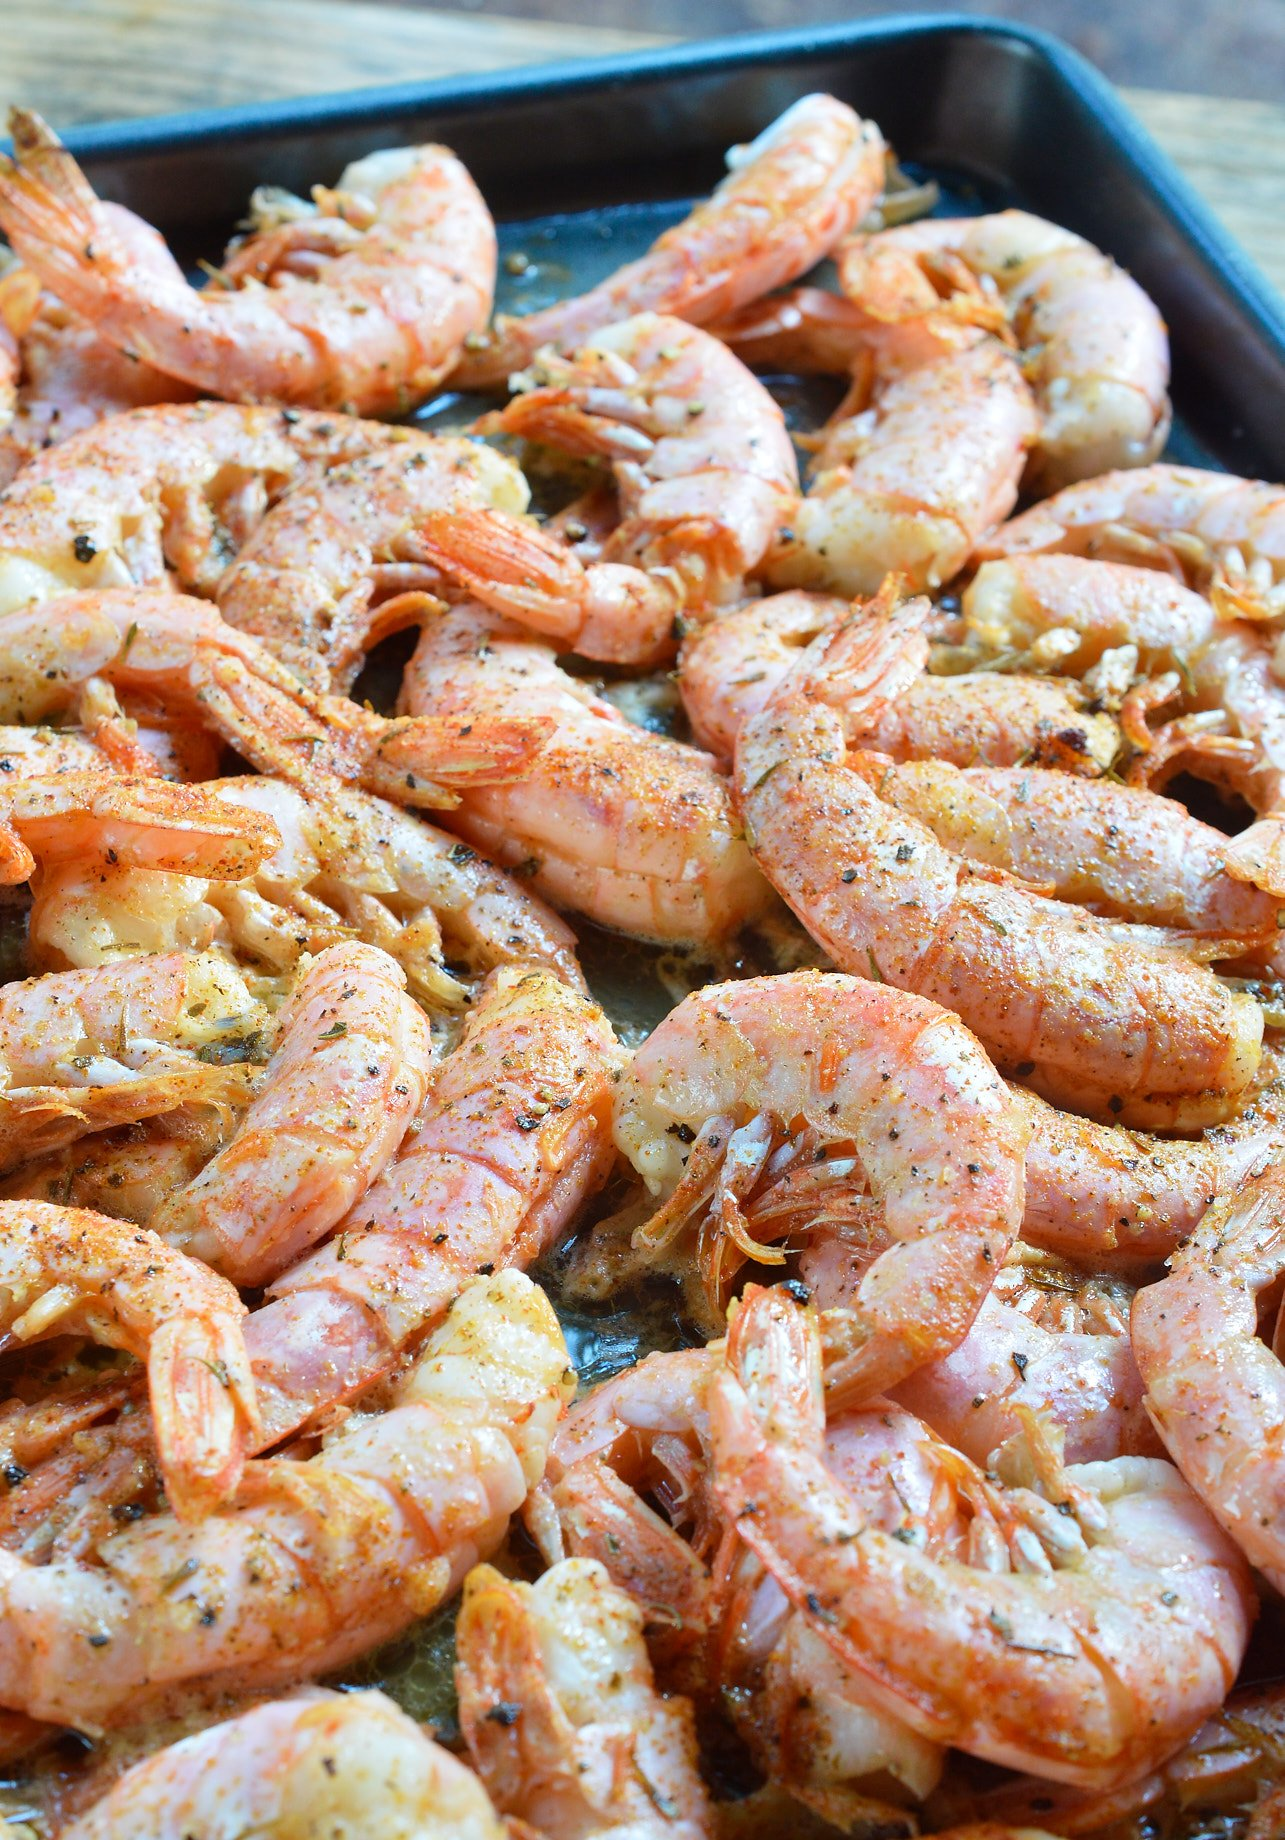 Oven Roasted Shrimp is quick, simple and delicious! This dinner or appetizer is swimming in butter, lemon and spices. Ready in 10 minutes!